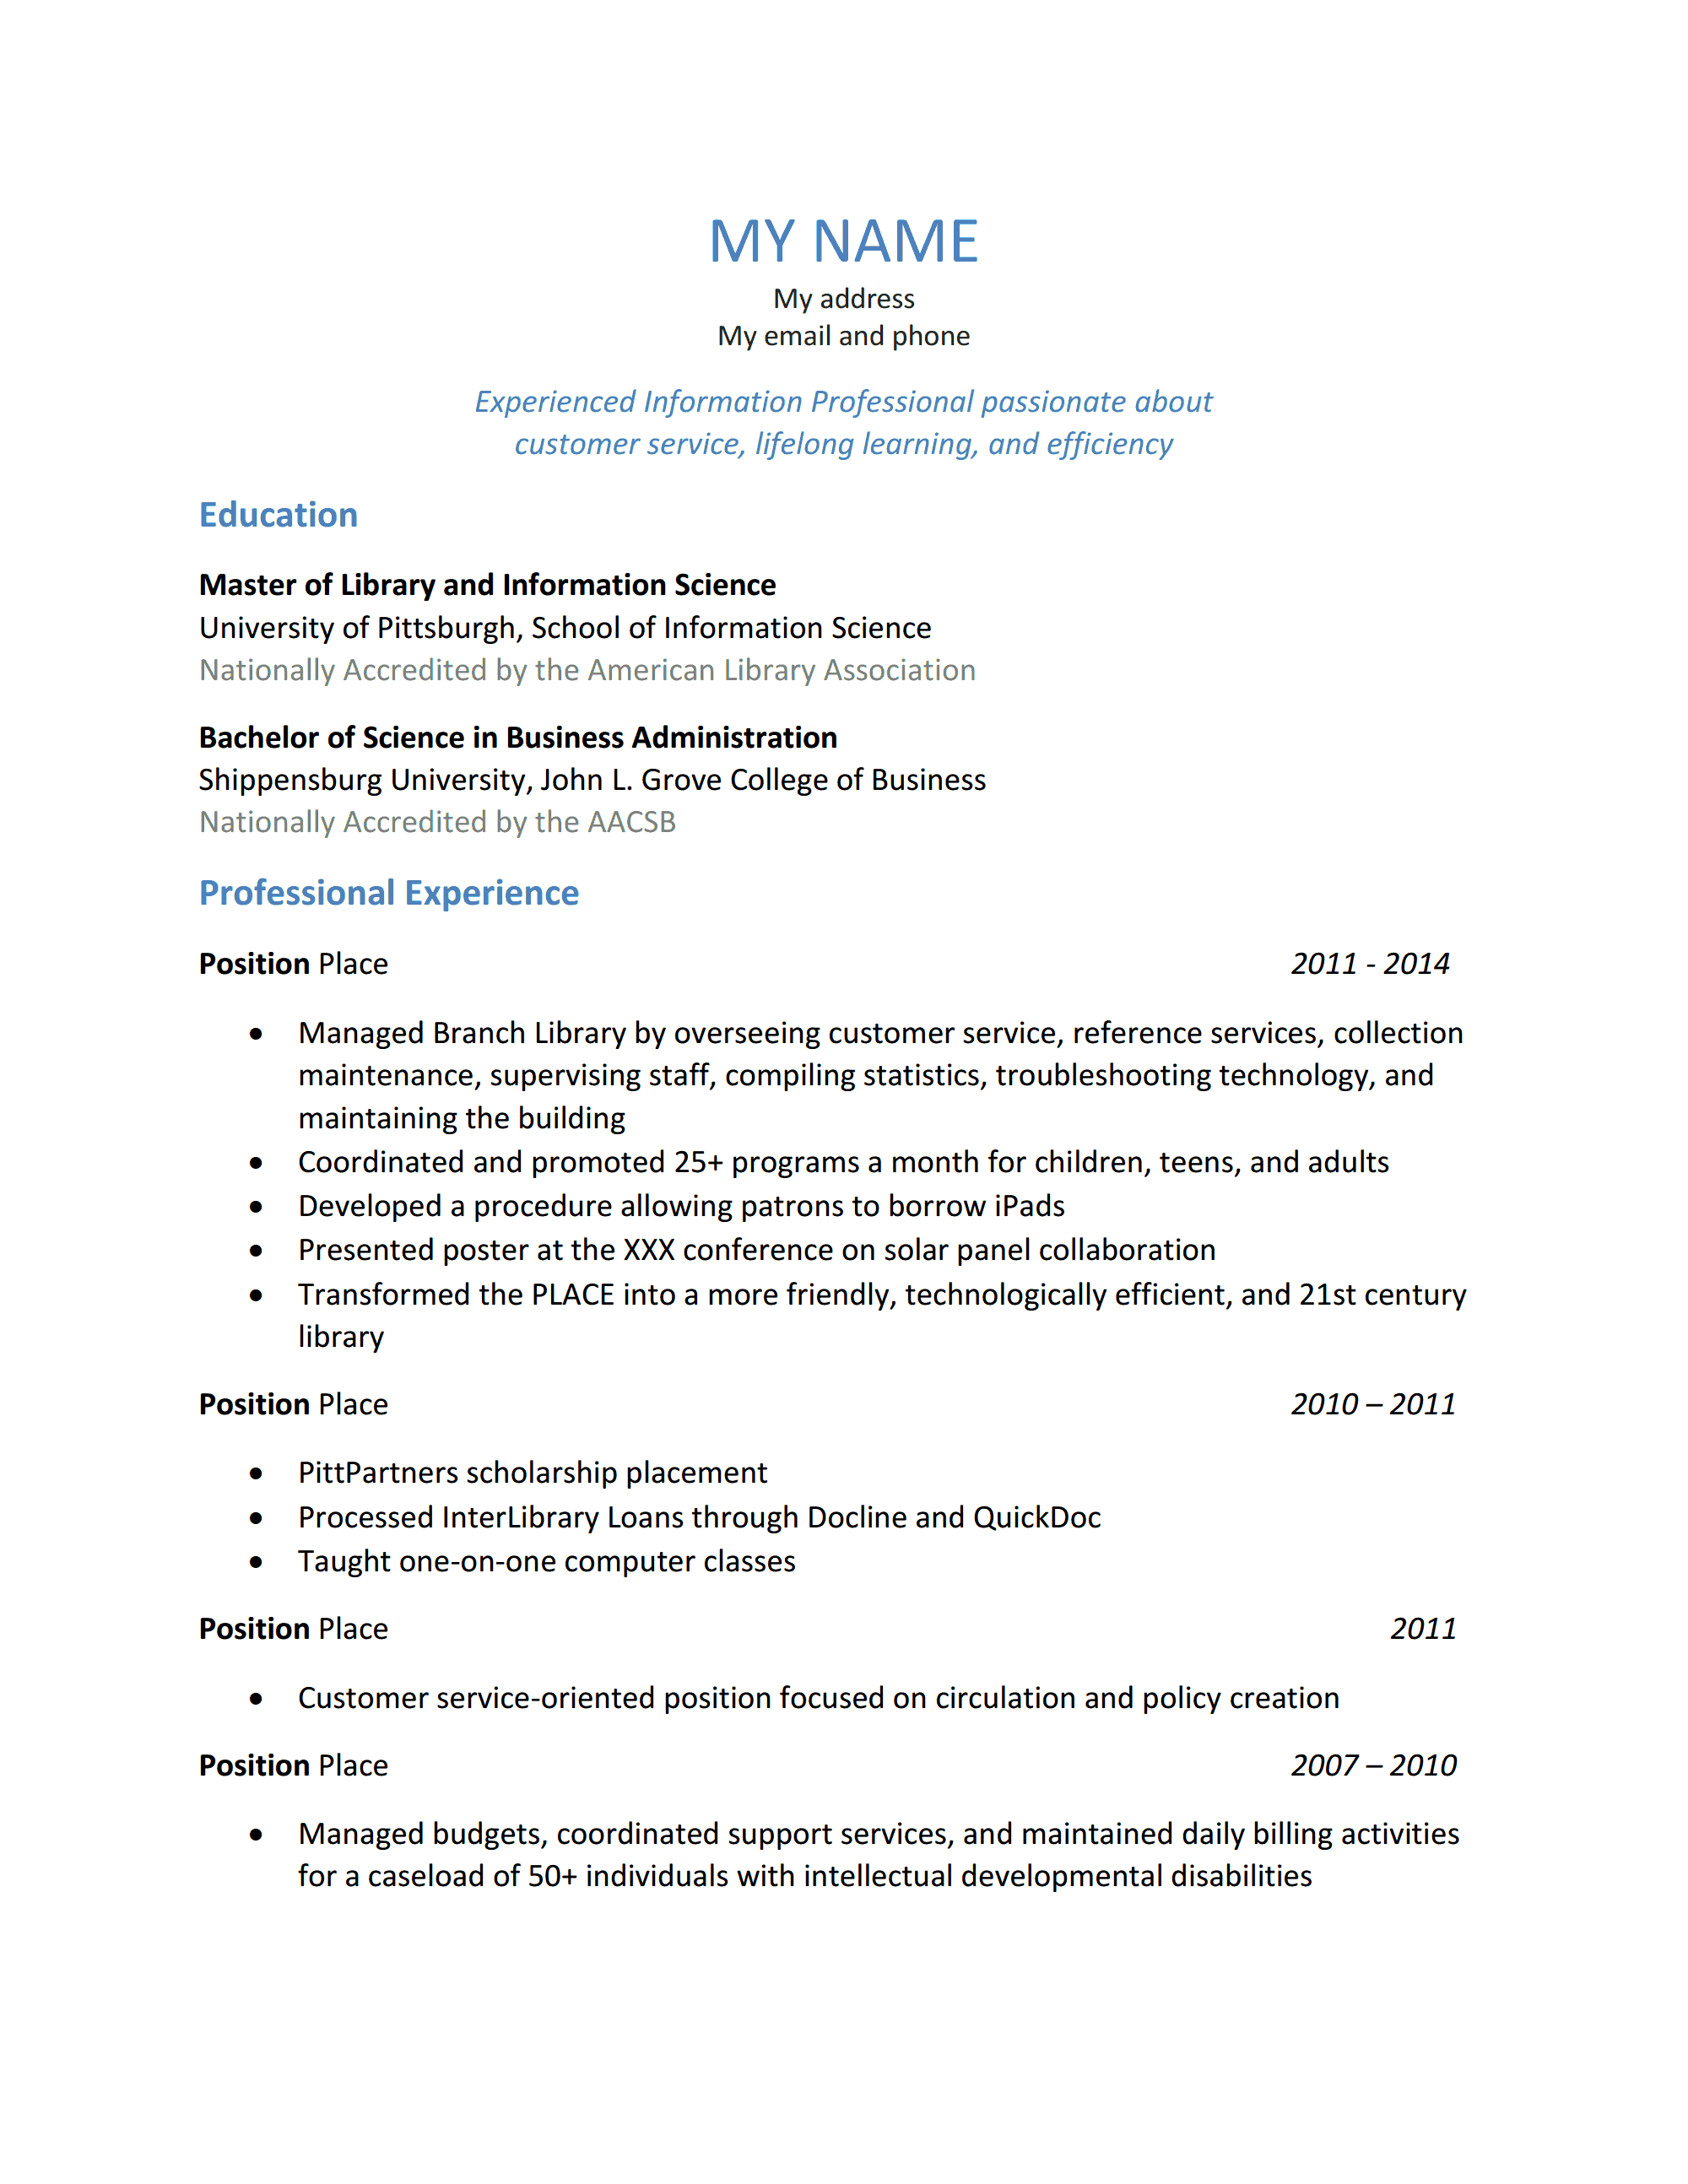 Working for a temp agency resume